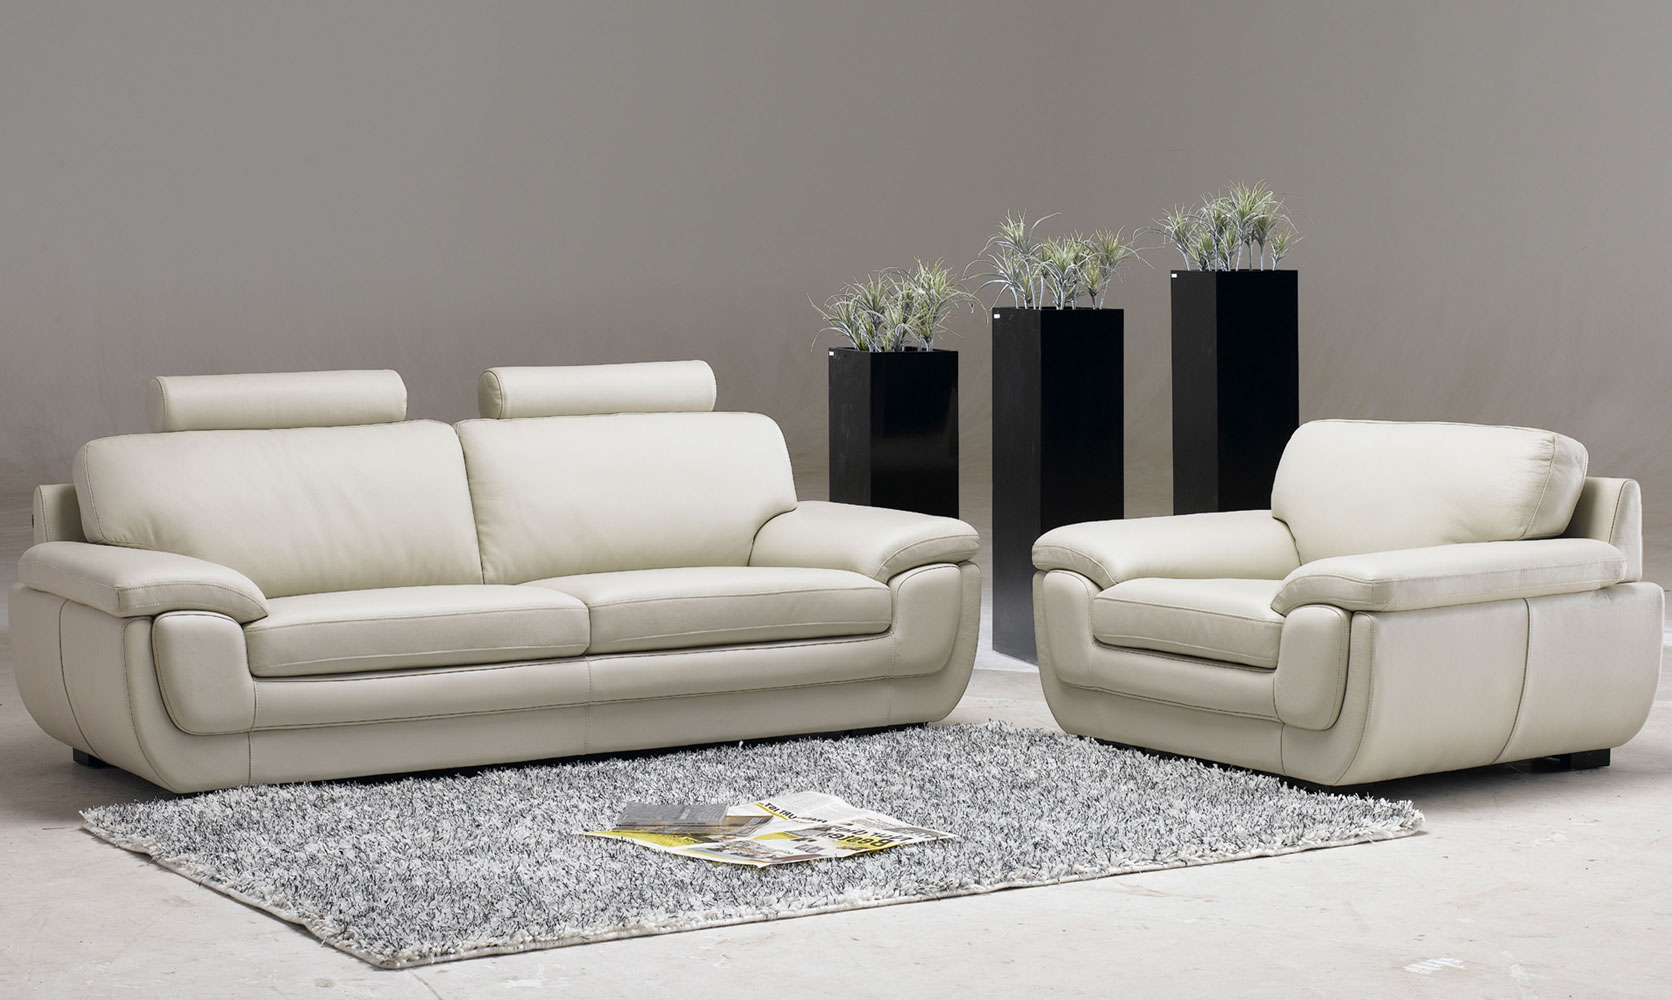 Attractive White Chairs For Living Room With Headrest Feature Grey Wool Area Rug  Elegant Modern Black Plant